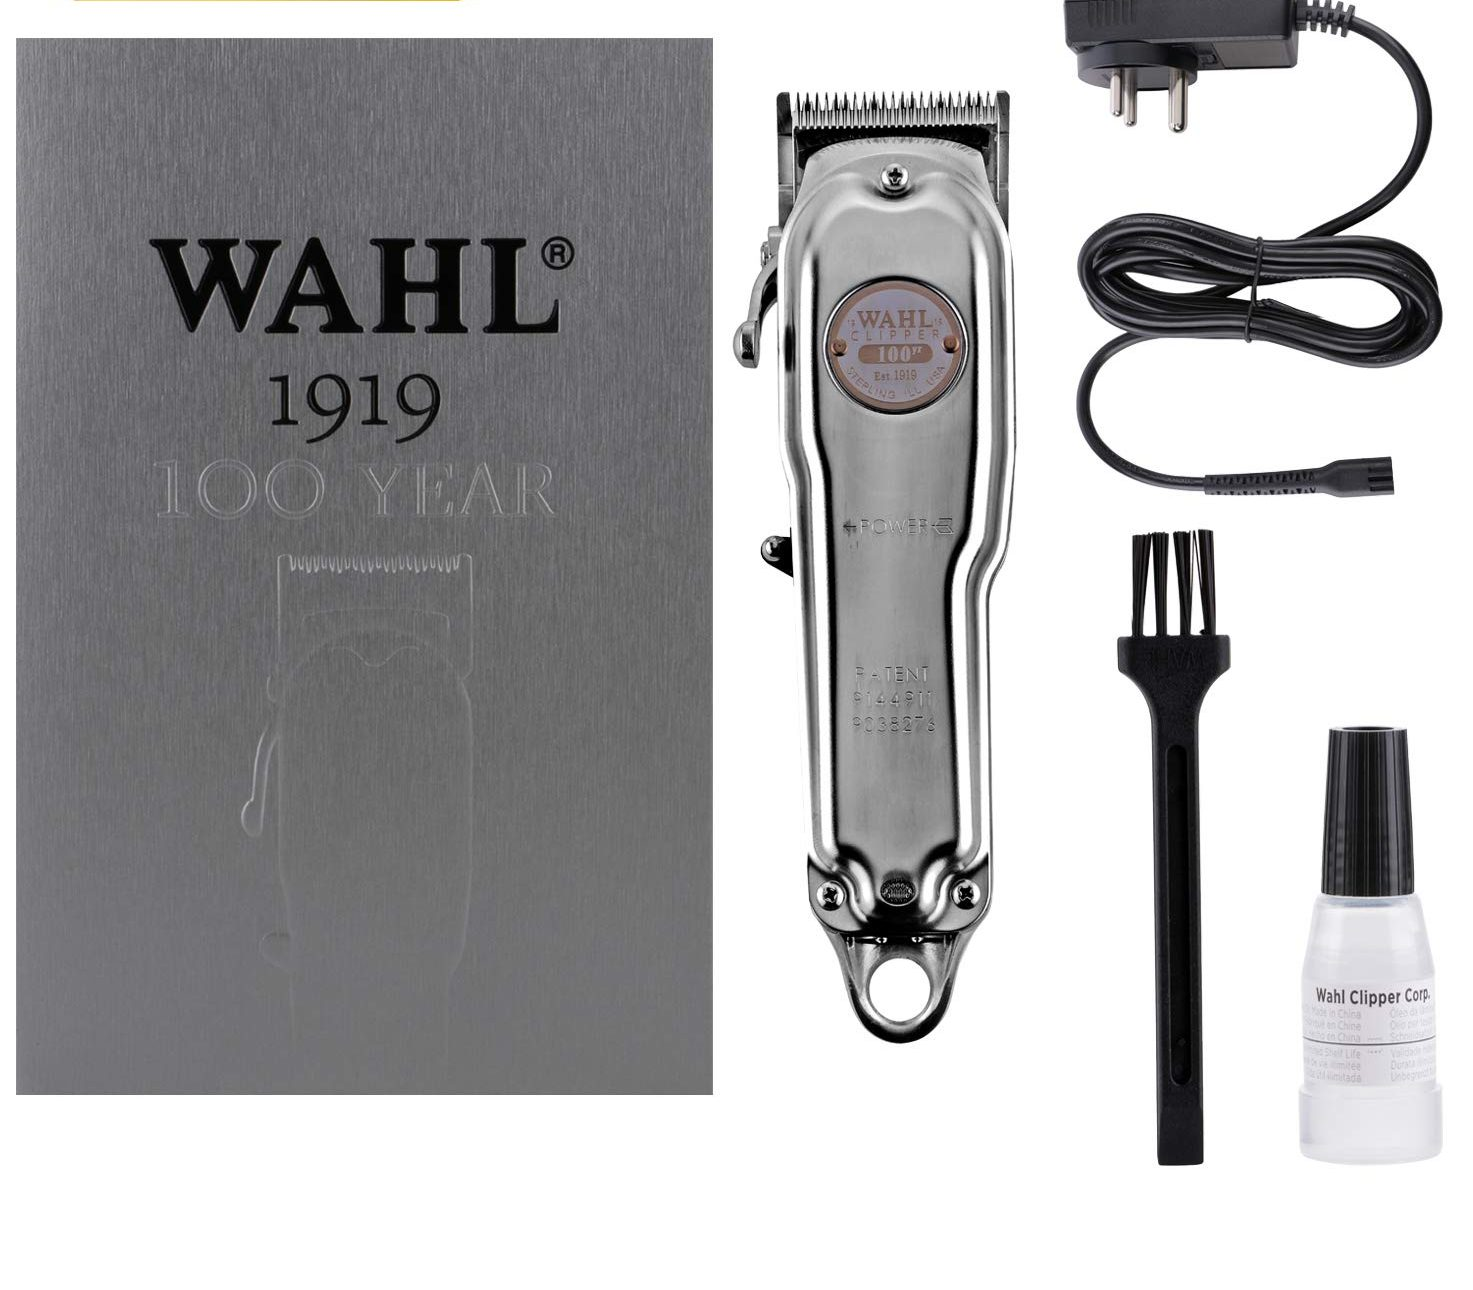 Wahl 100-year anniversary special clipper